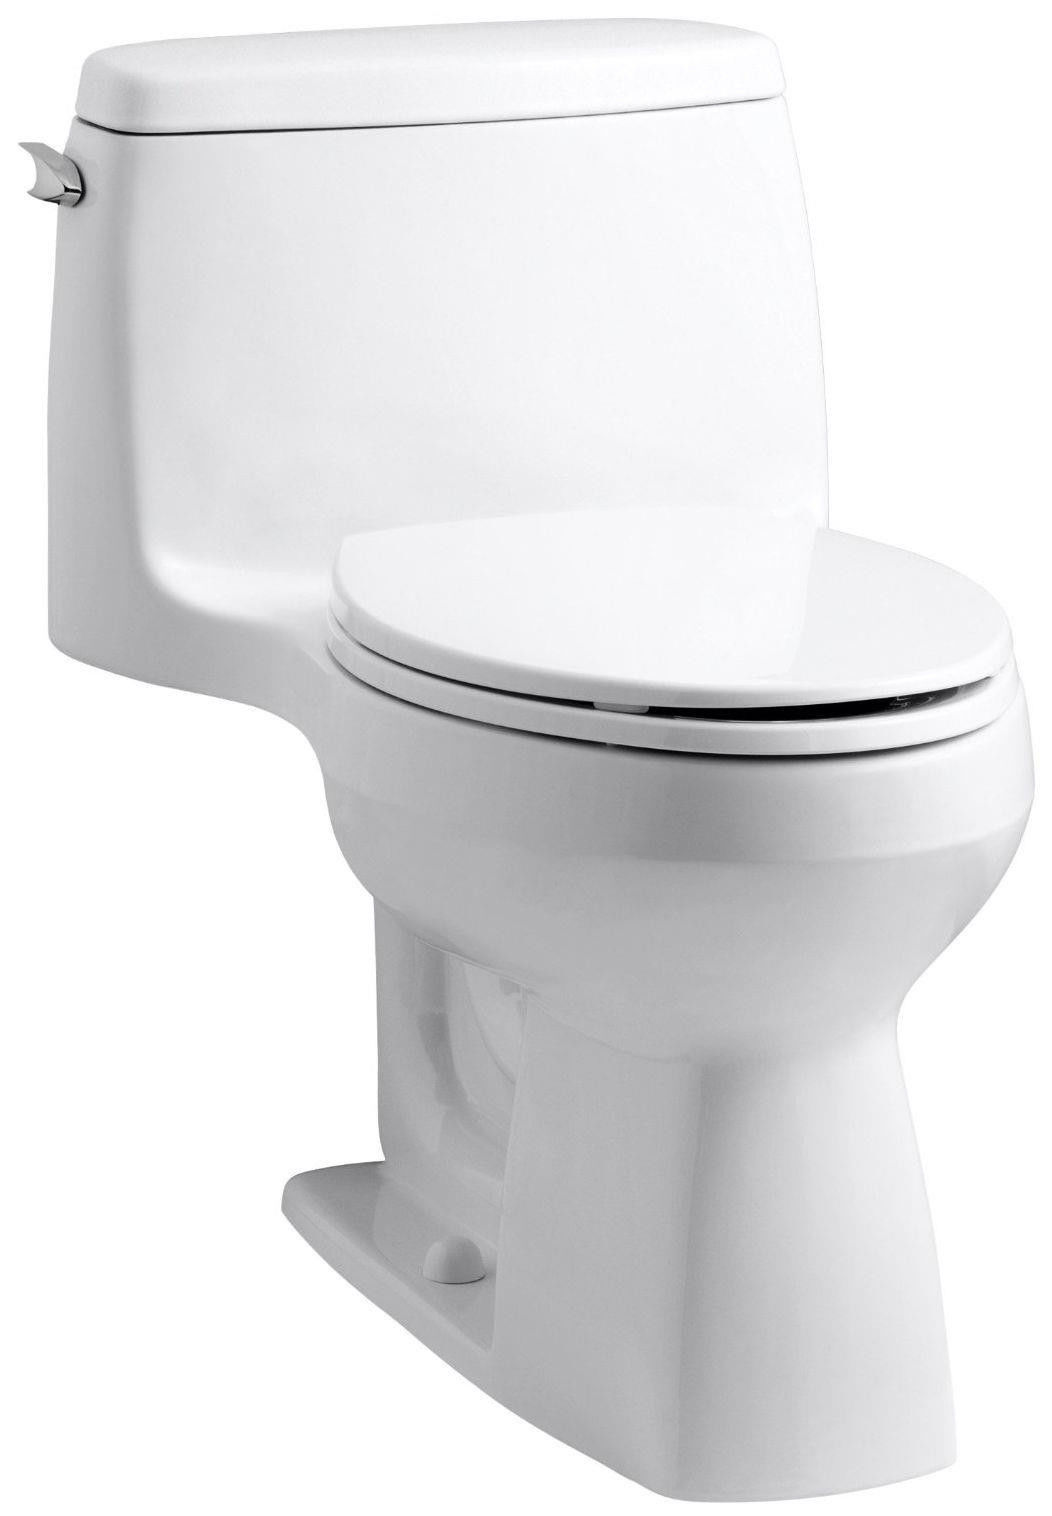 What Are The Best 10 Inch Rough In Toilets Ebay